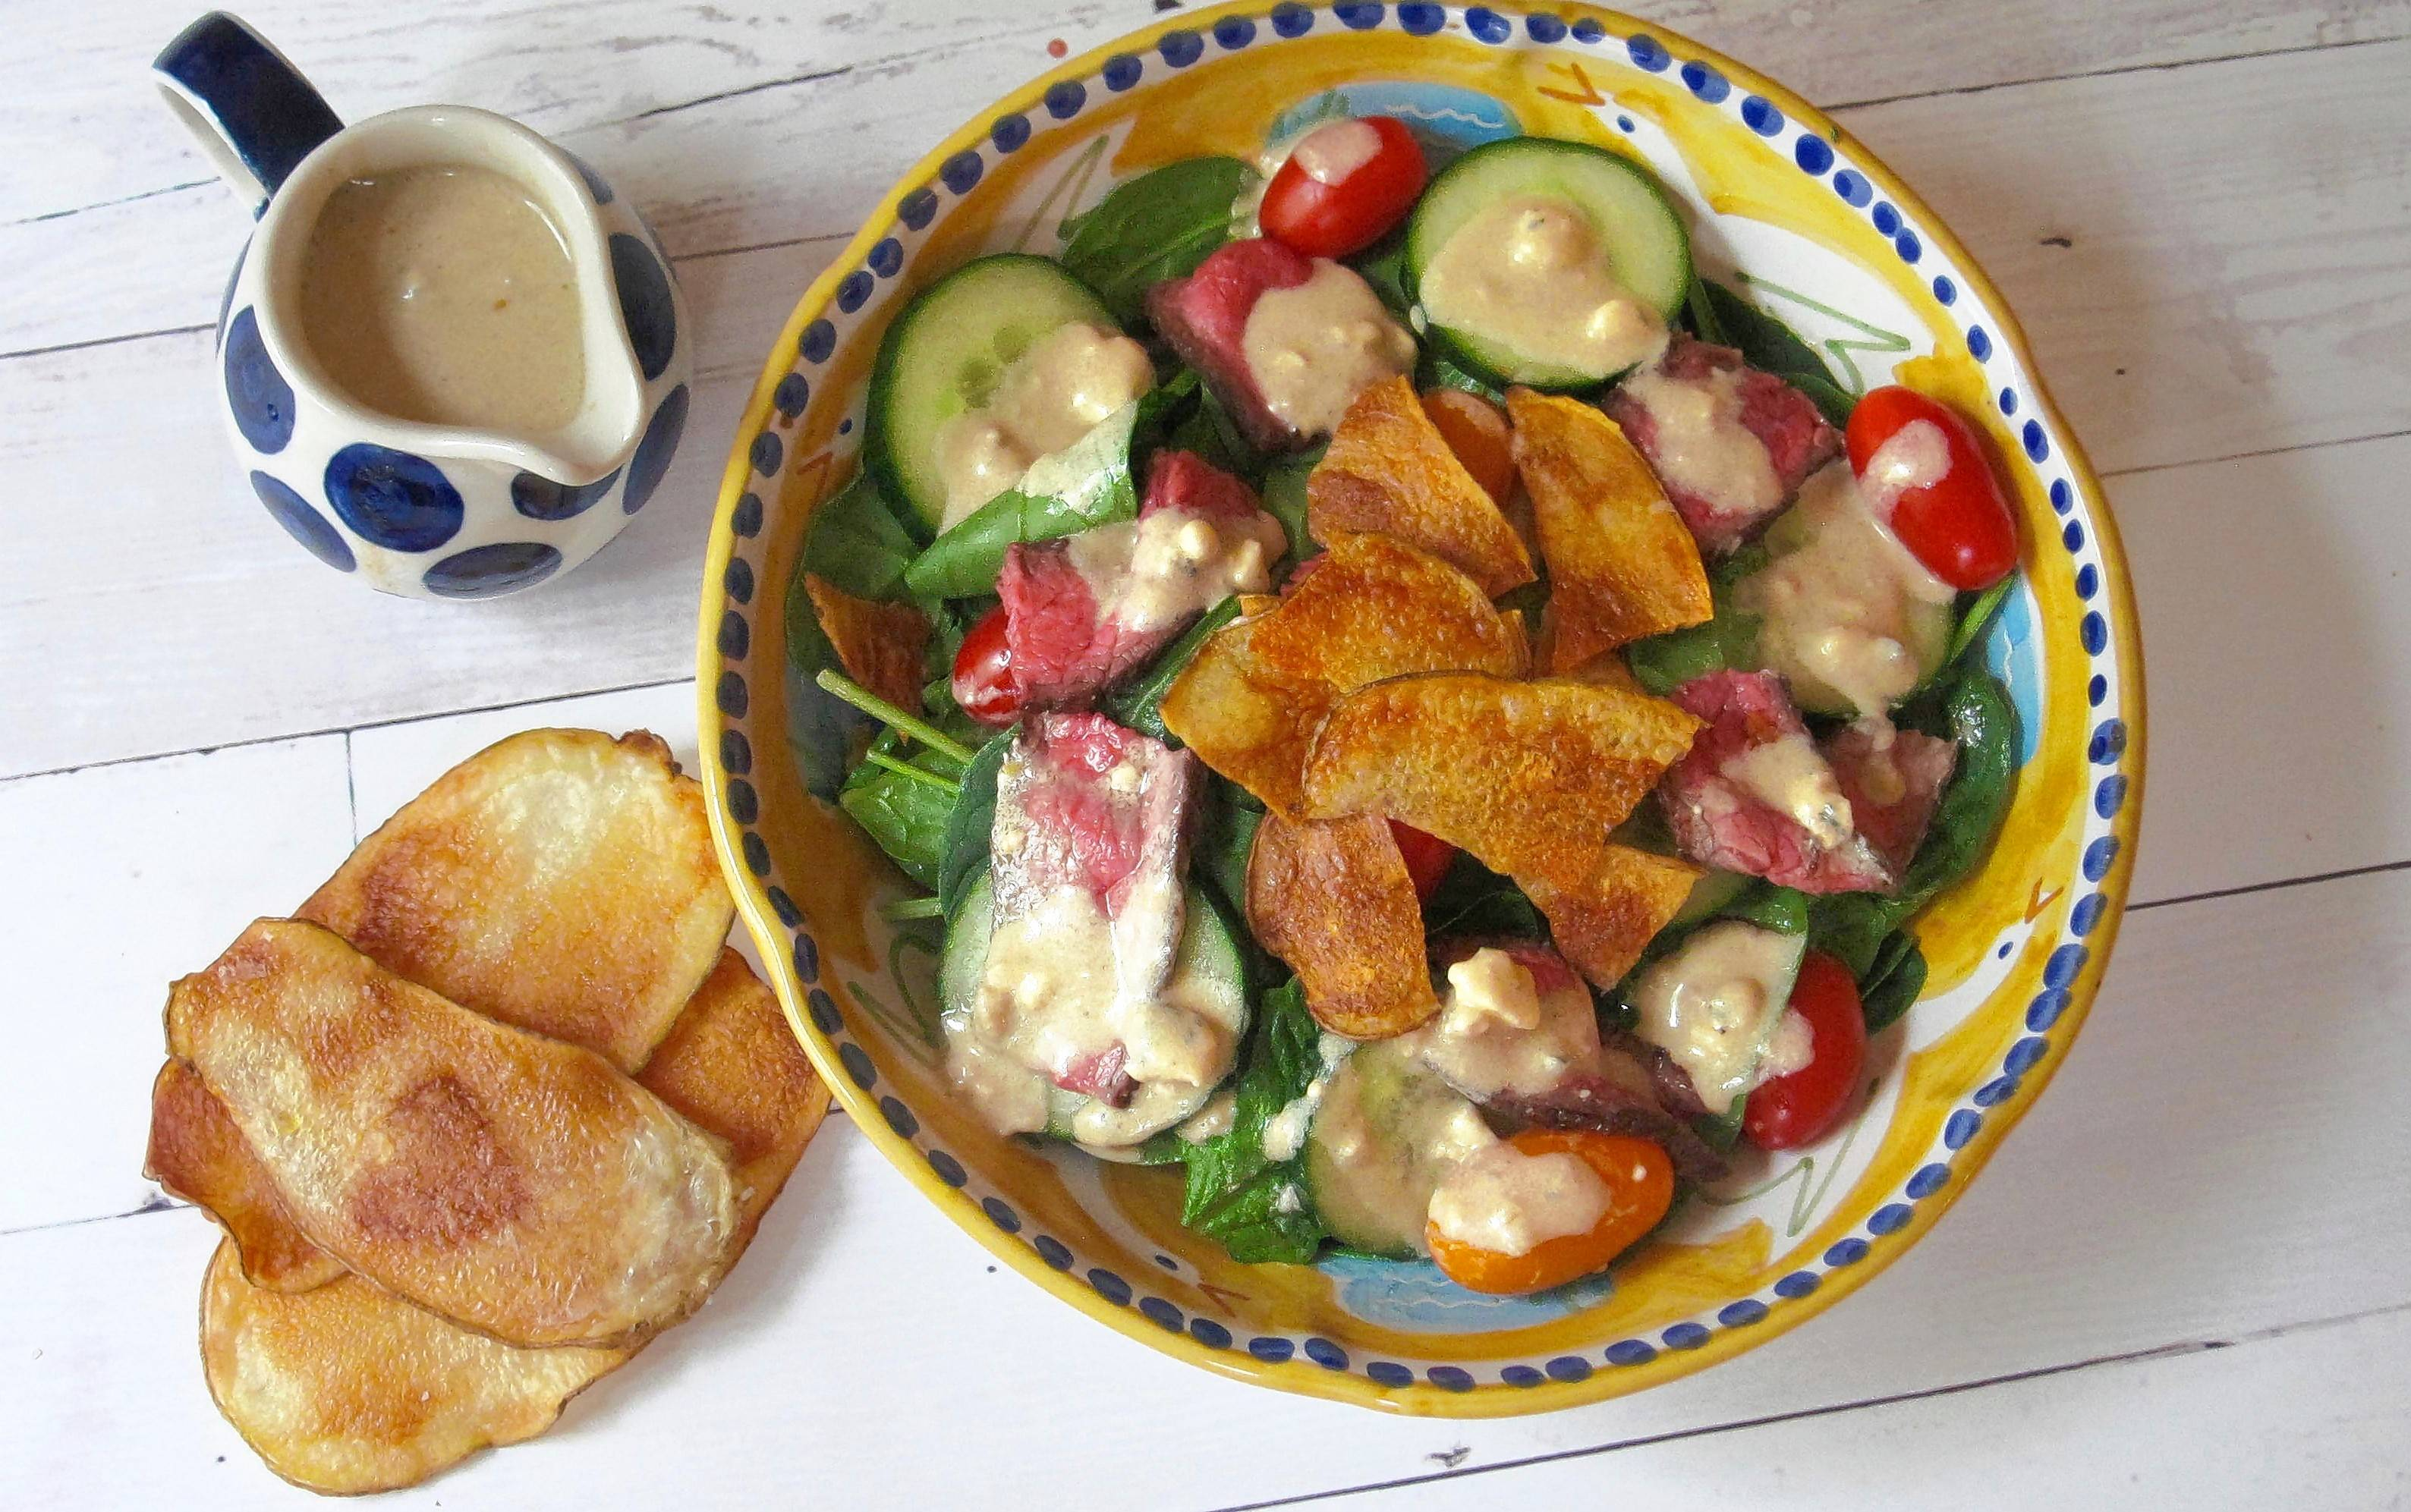 A warm steak and potato chip salad with blue cheese dressing. All the richness of a steak with bluecheese accents and even potato chips, all as a salad.